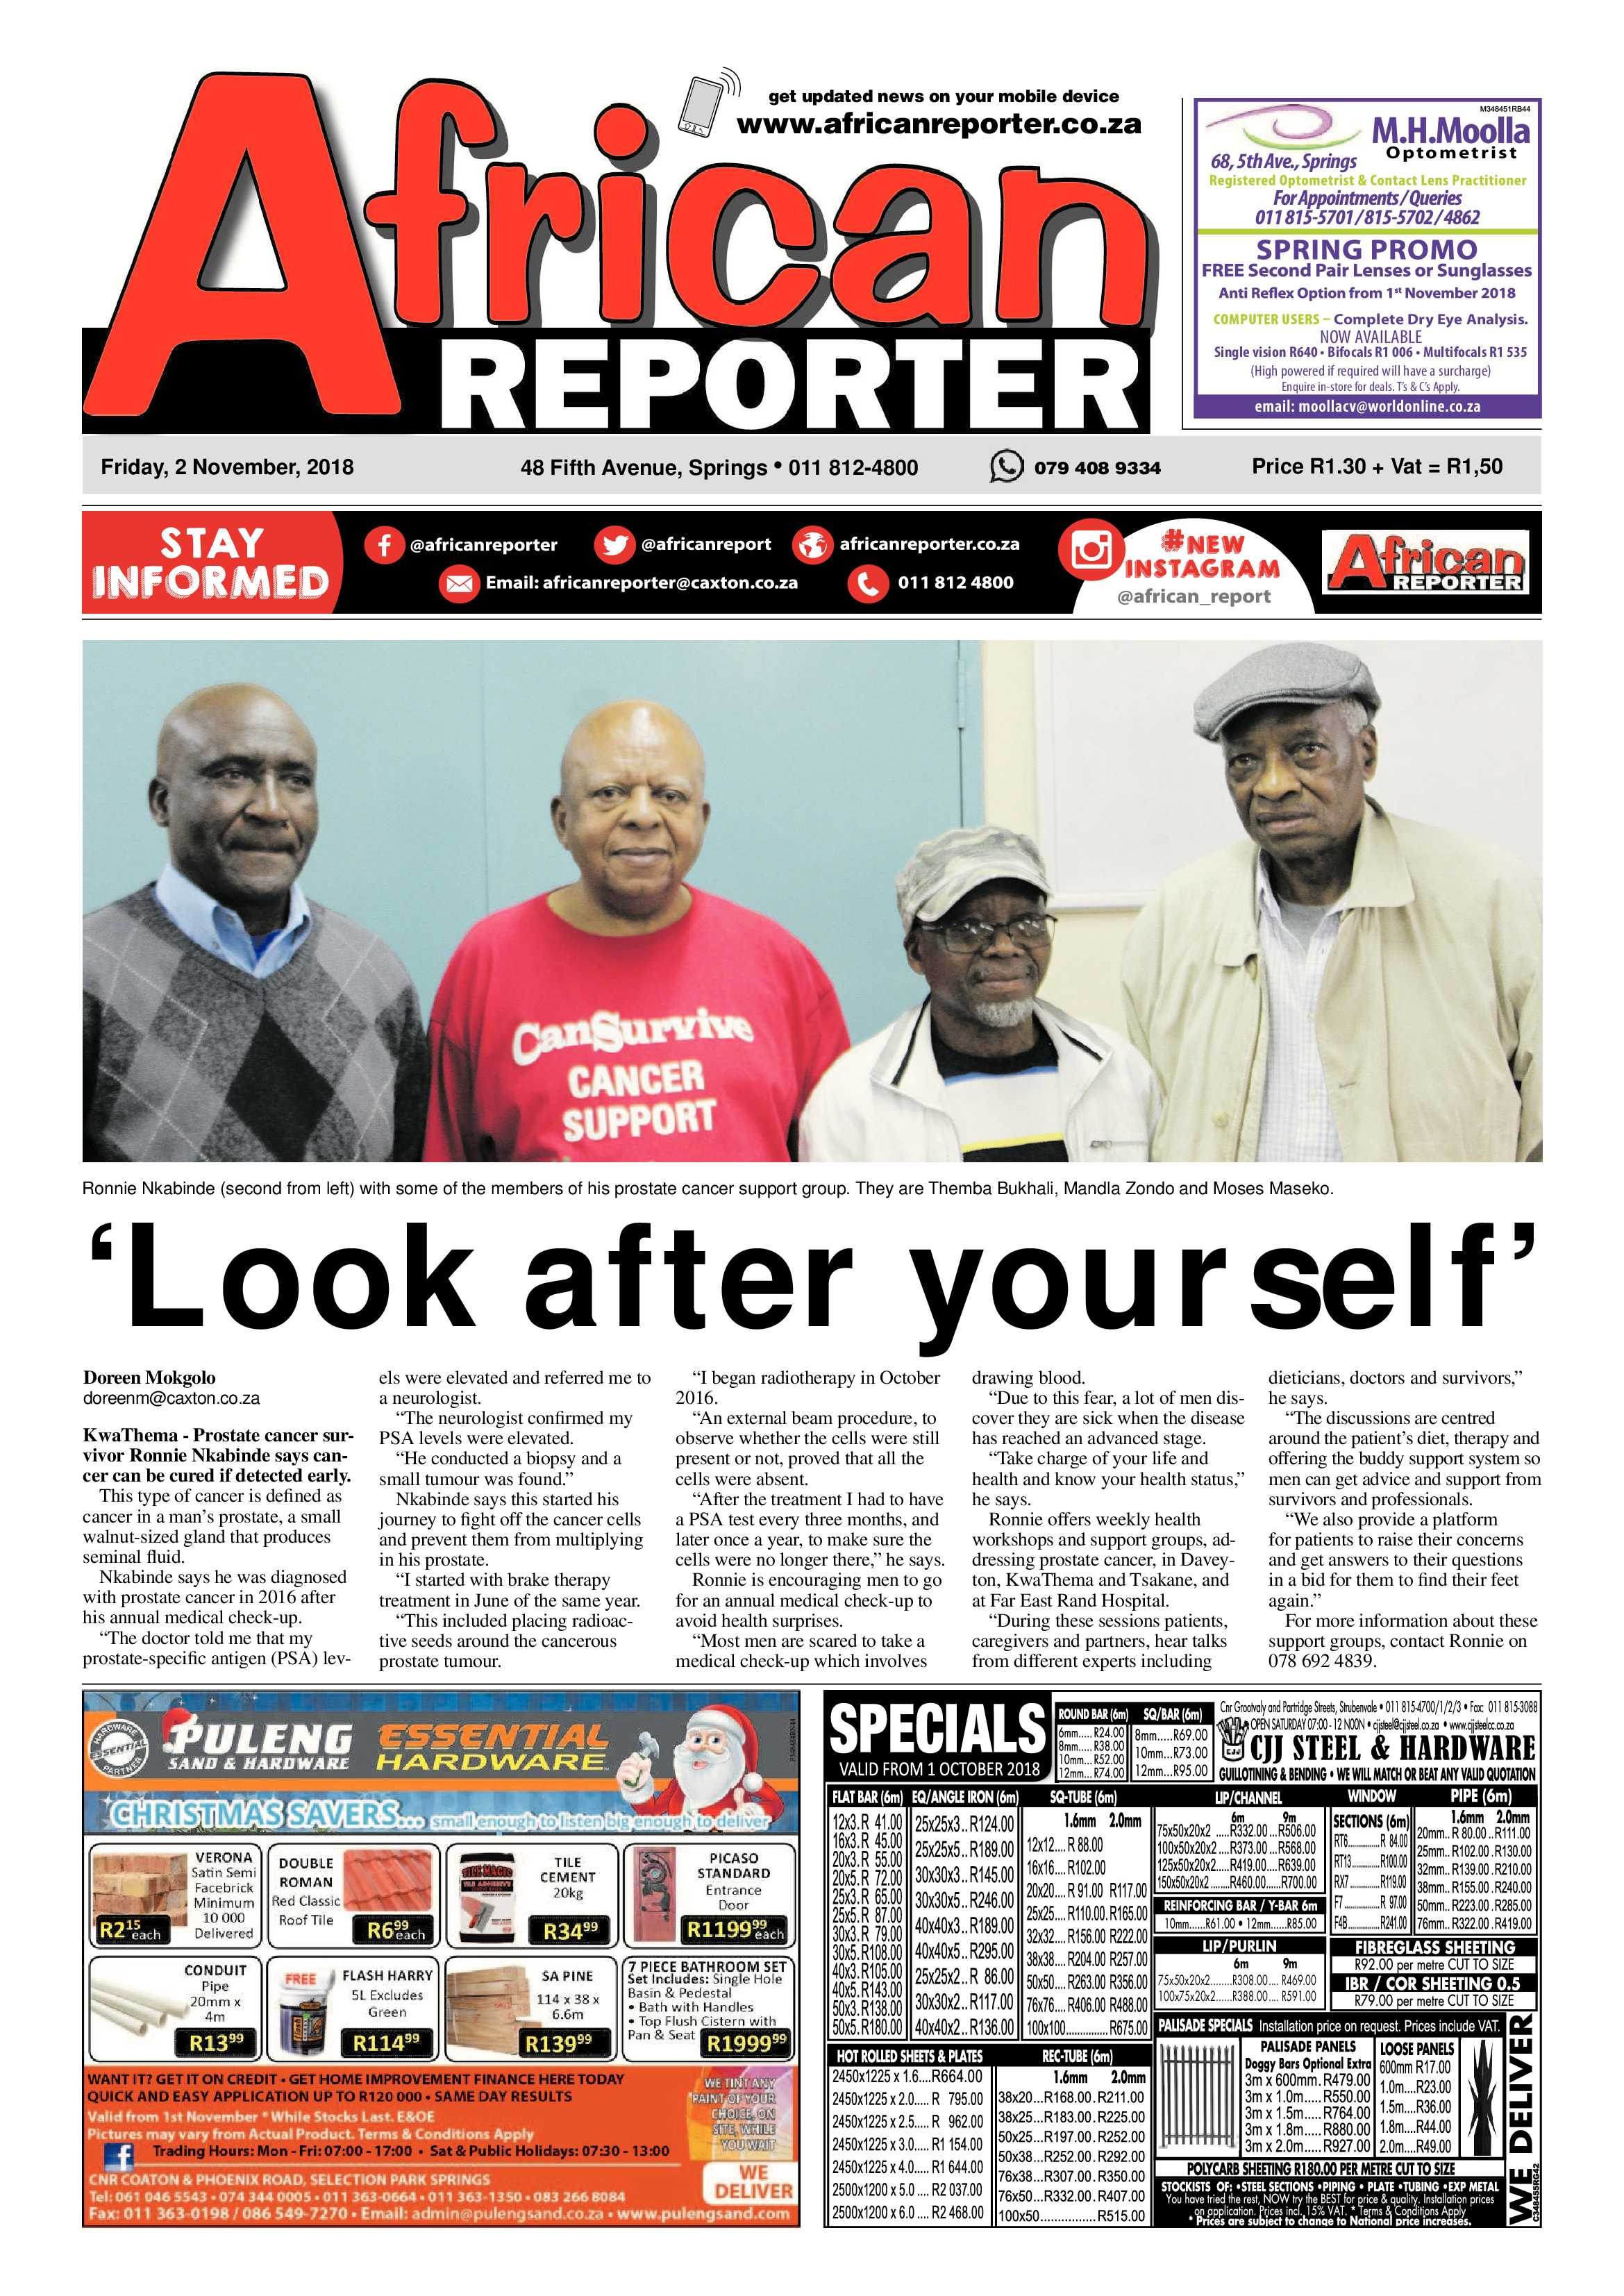 african-reporter-02-november-2018-epapers-page-1